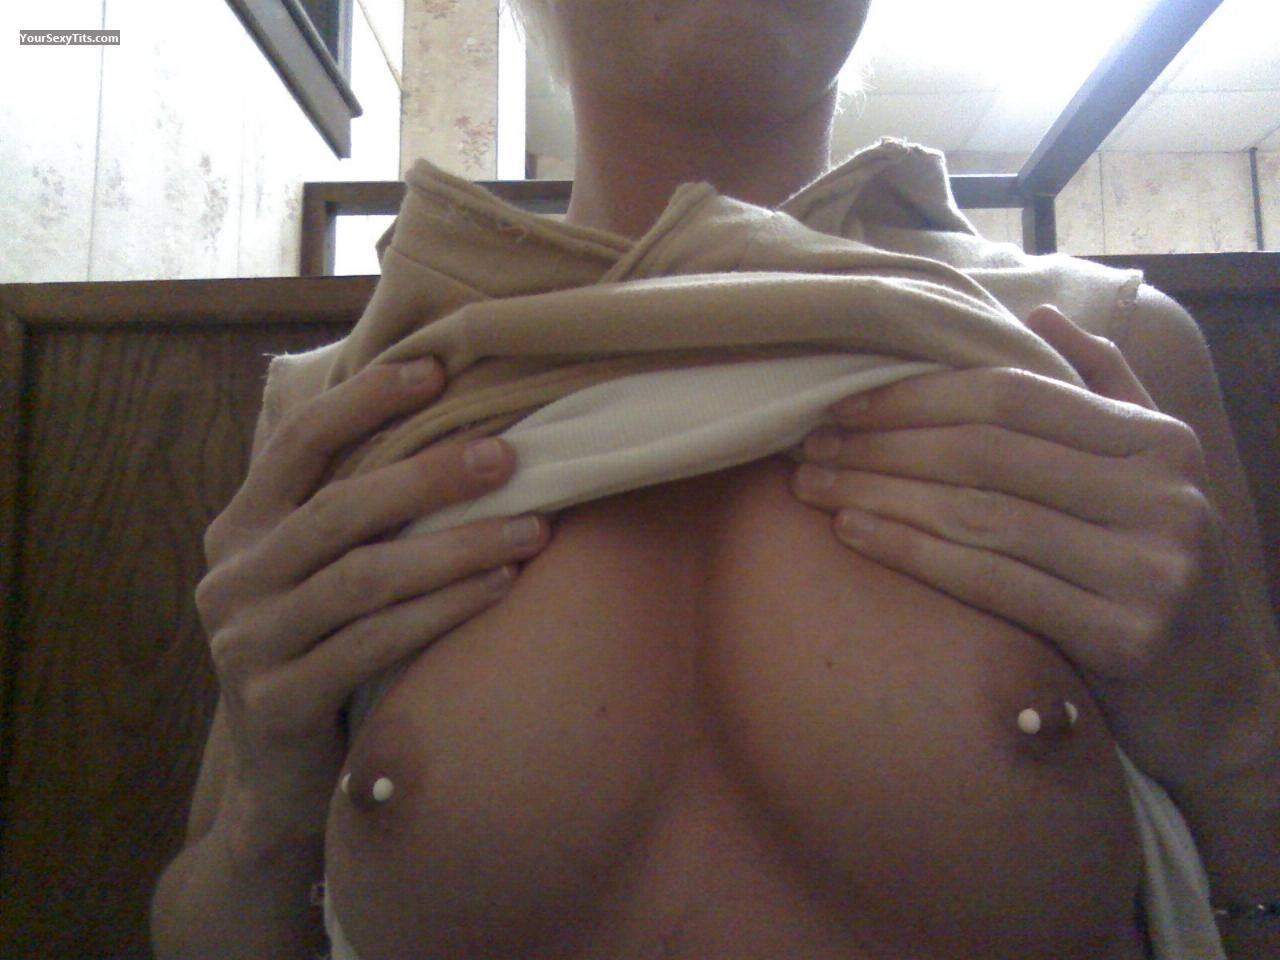 My Small Tits Selfie by Blondie